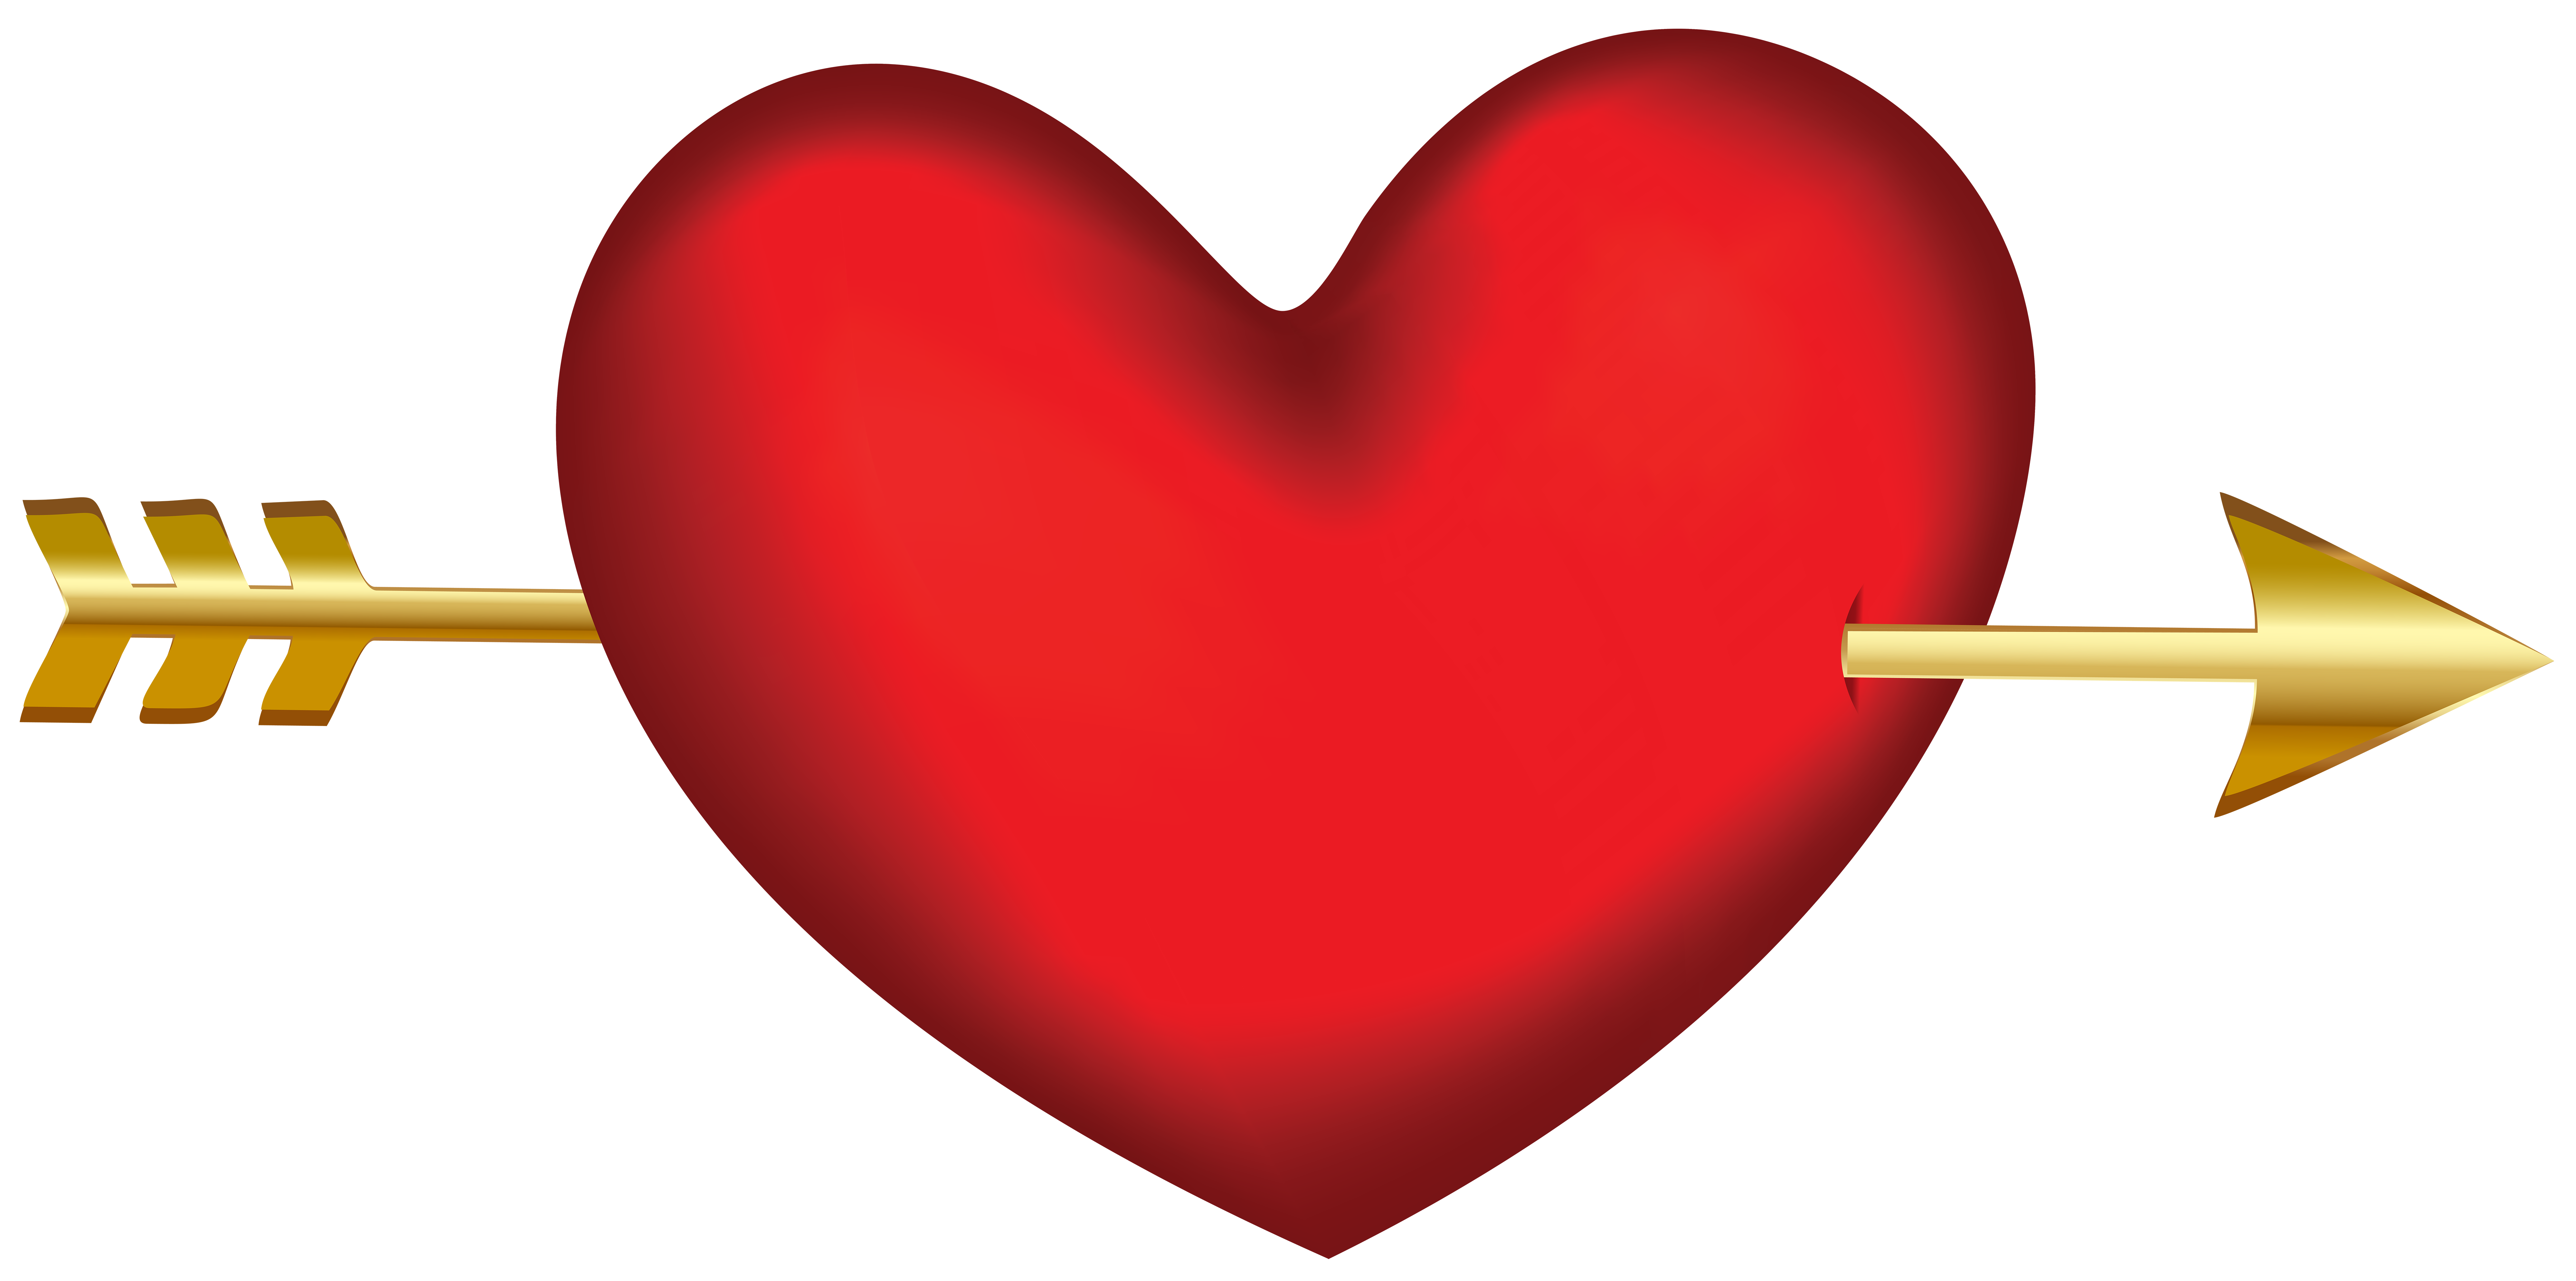 Red heart with arrow clipart transparent background clip art free Heart with arrow png clipart images gallery for free ... clip art free